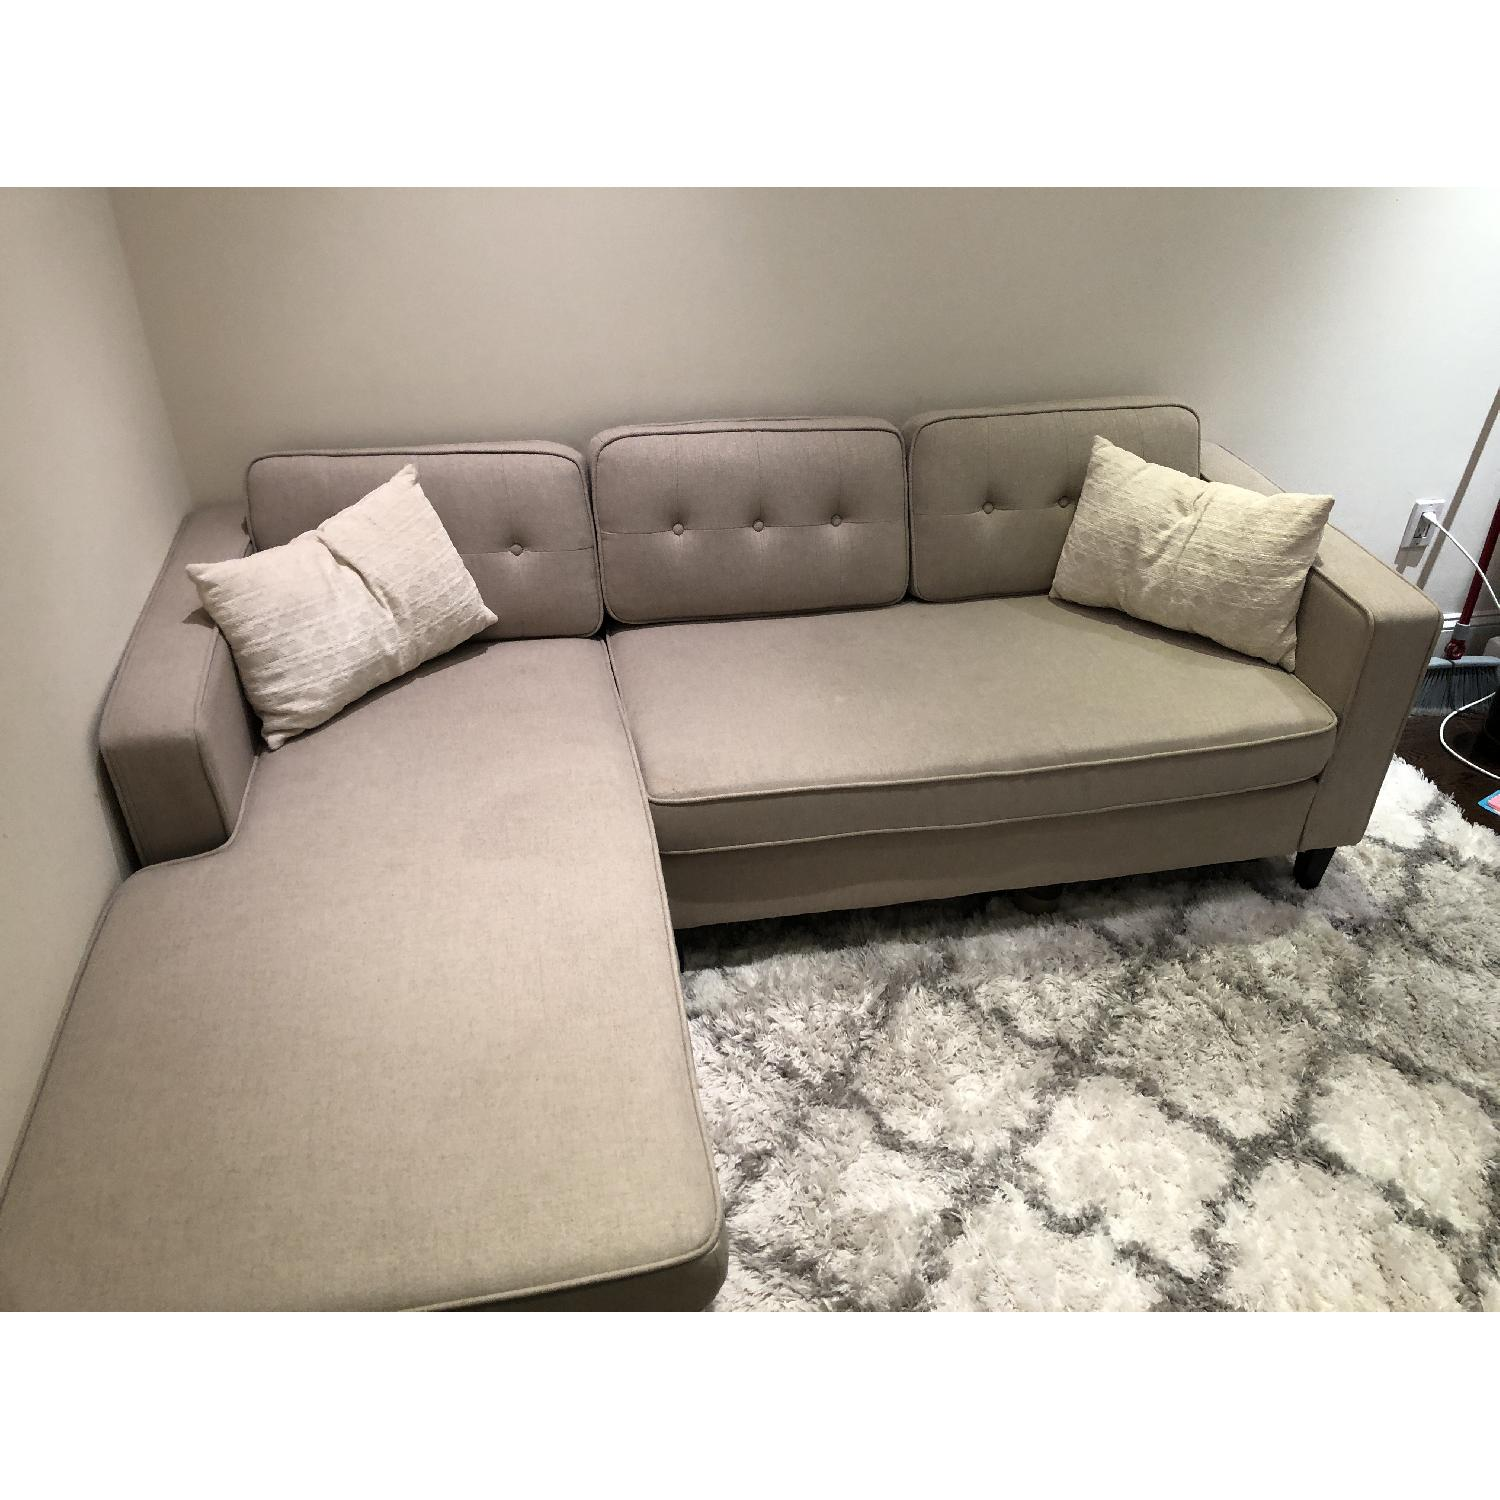 ... Windsor 2 Piece Cream Chaise Sectional Sofa 1 ...